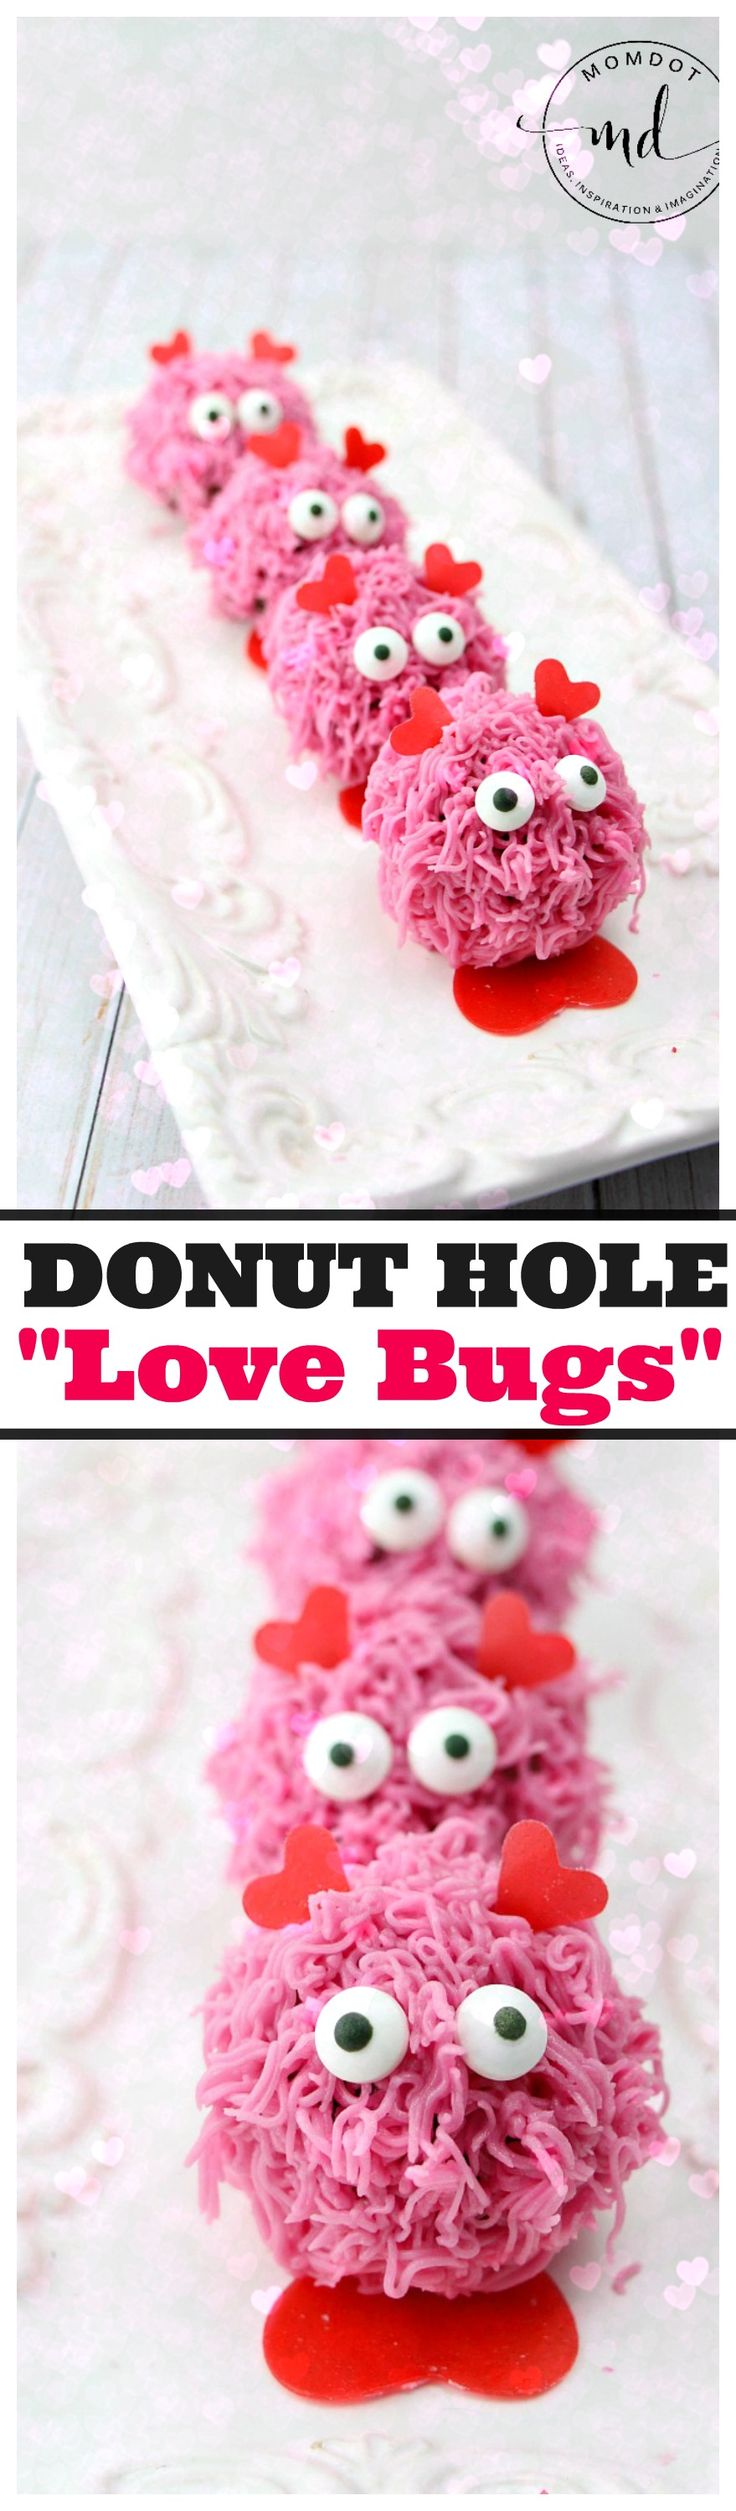 "Easy Donut Hole Recipe with Buttercream frosting, create an adorable Valentines Day ""Love Bug"" of out donut holes, adorable breakfast"